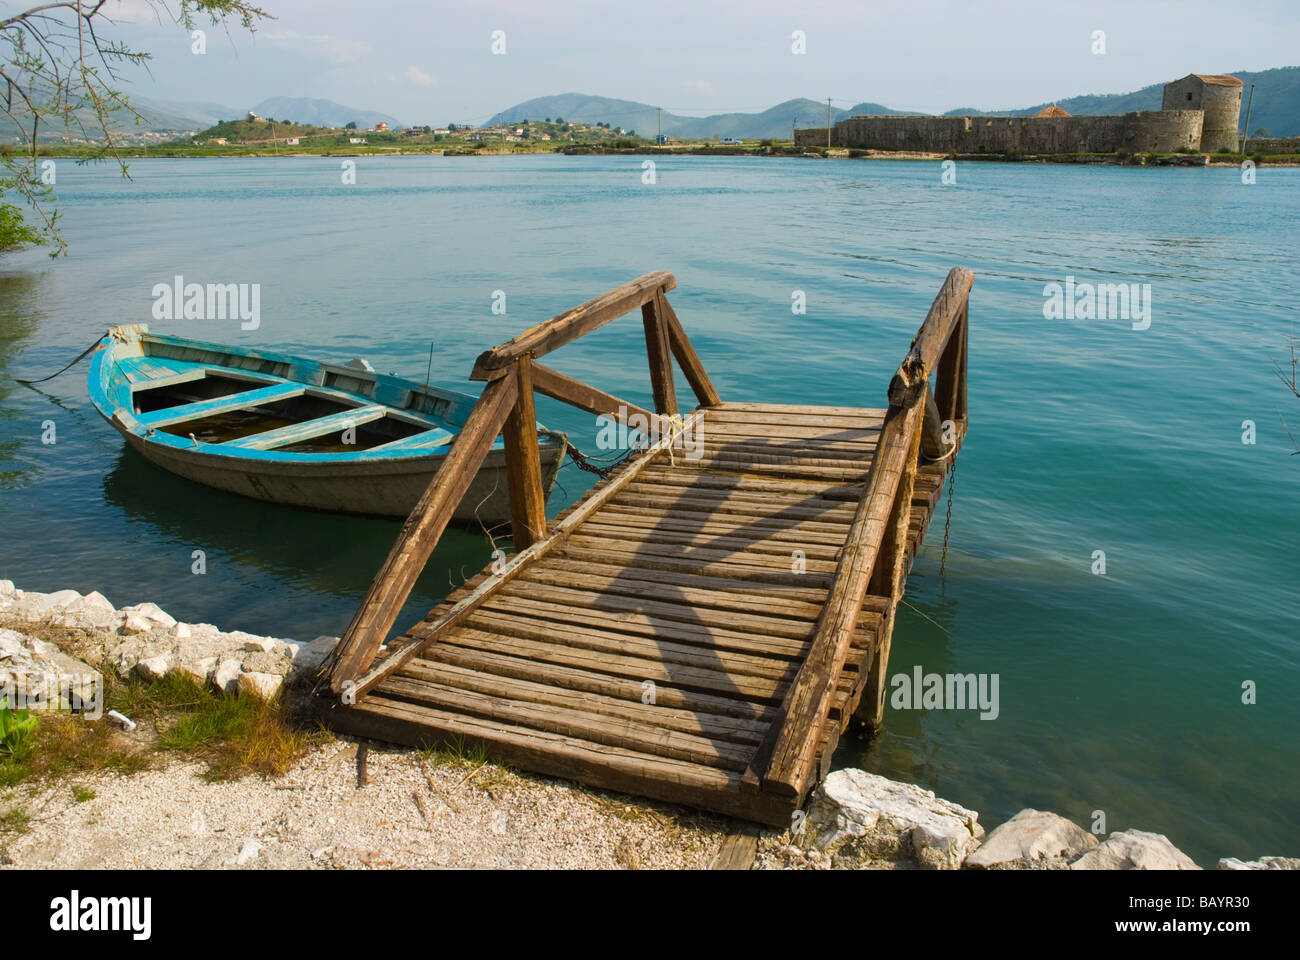 Boat and quay with Venetian triangle castle in Butrint Albania Europe - Stock Image